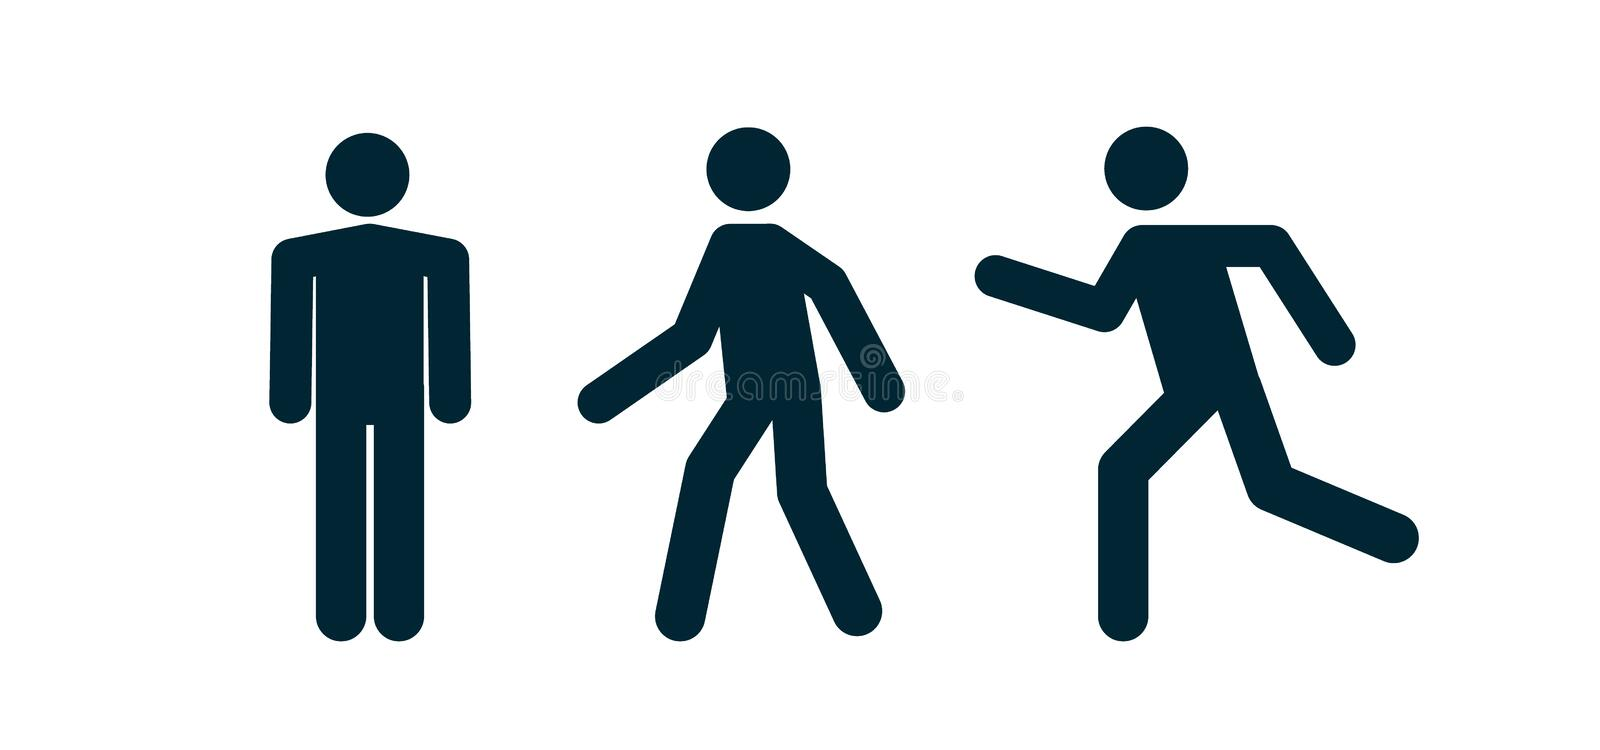 Man stand walk and run pictogram icon. Man pedestrian sign people and road traffic vector silhouette royalty free illustration